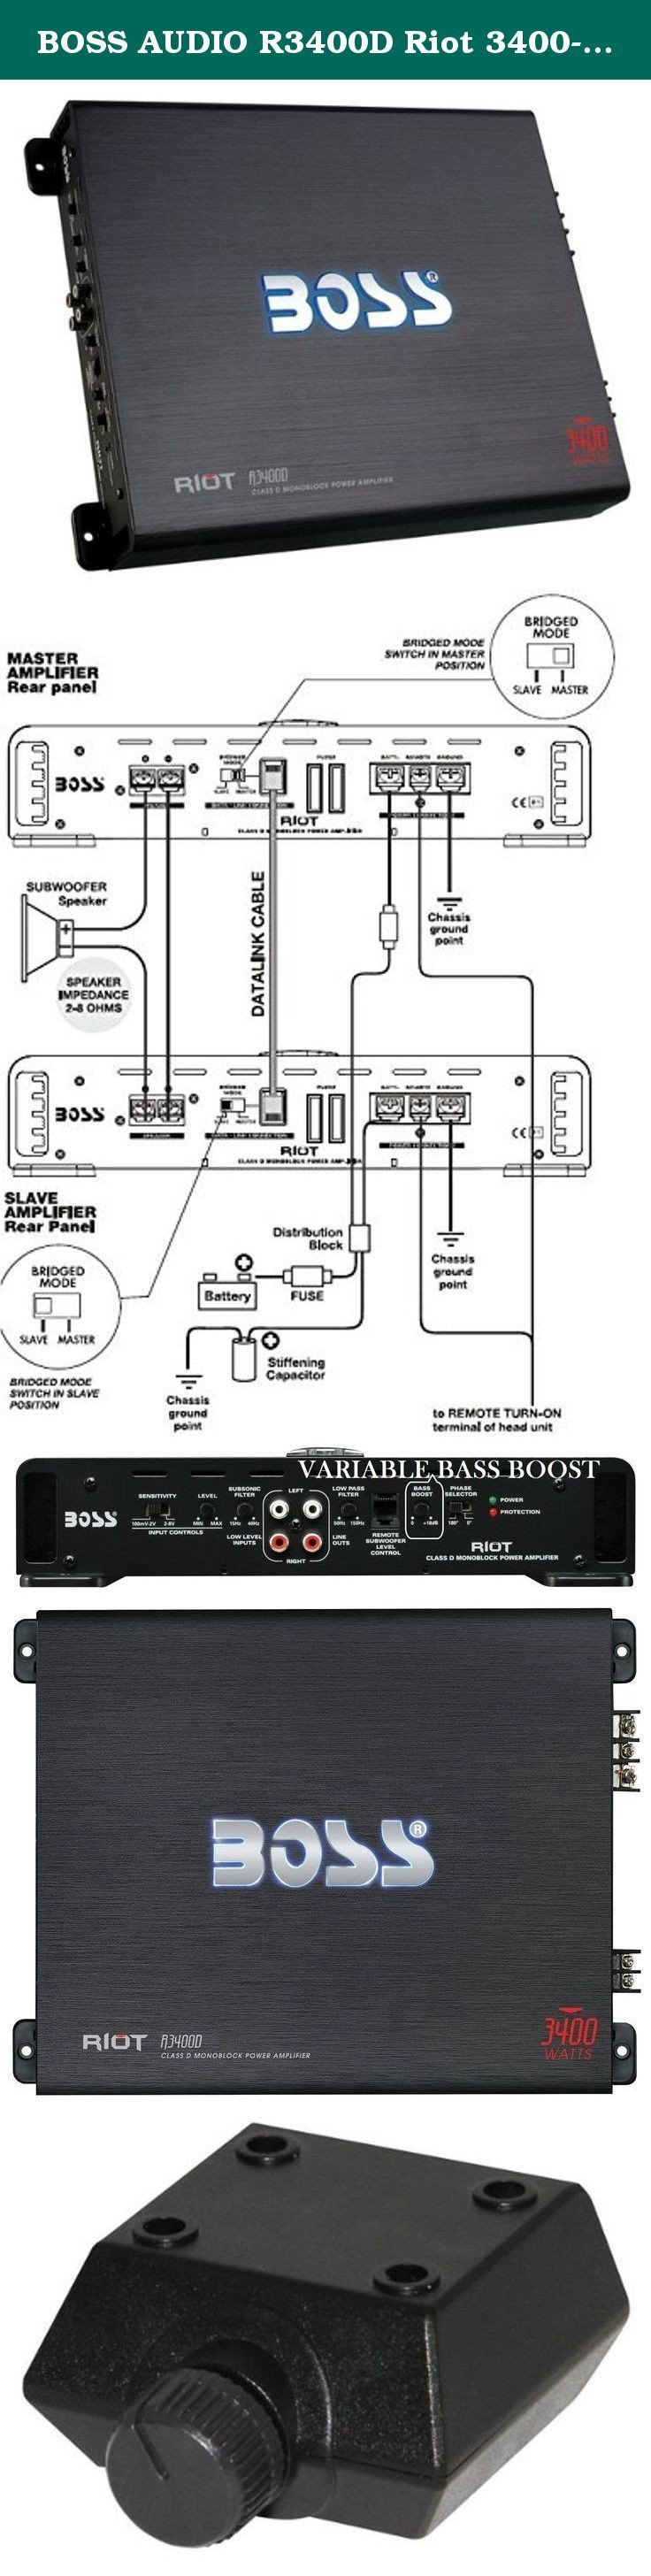 Hifonics brutus amp wiring diagram hifonics brutus 3000 watt amp funky hifonics wiring diagram composition the wire magnox info 2013 hifonics brutus brz24001d amplifier asfbconference2016 Gallery